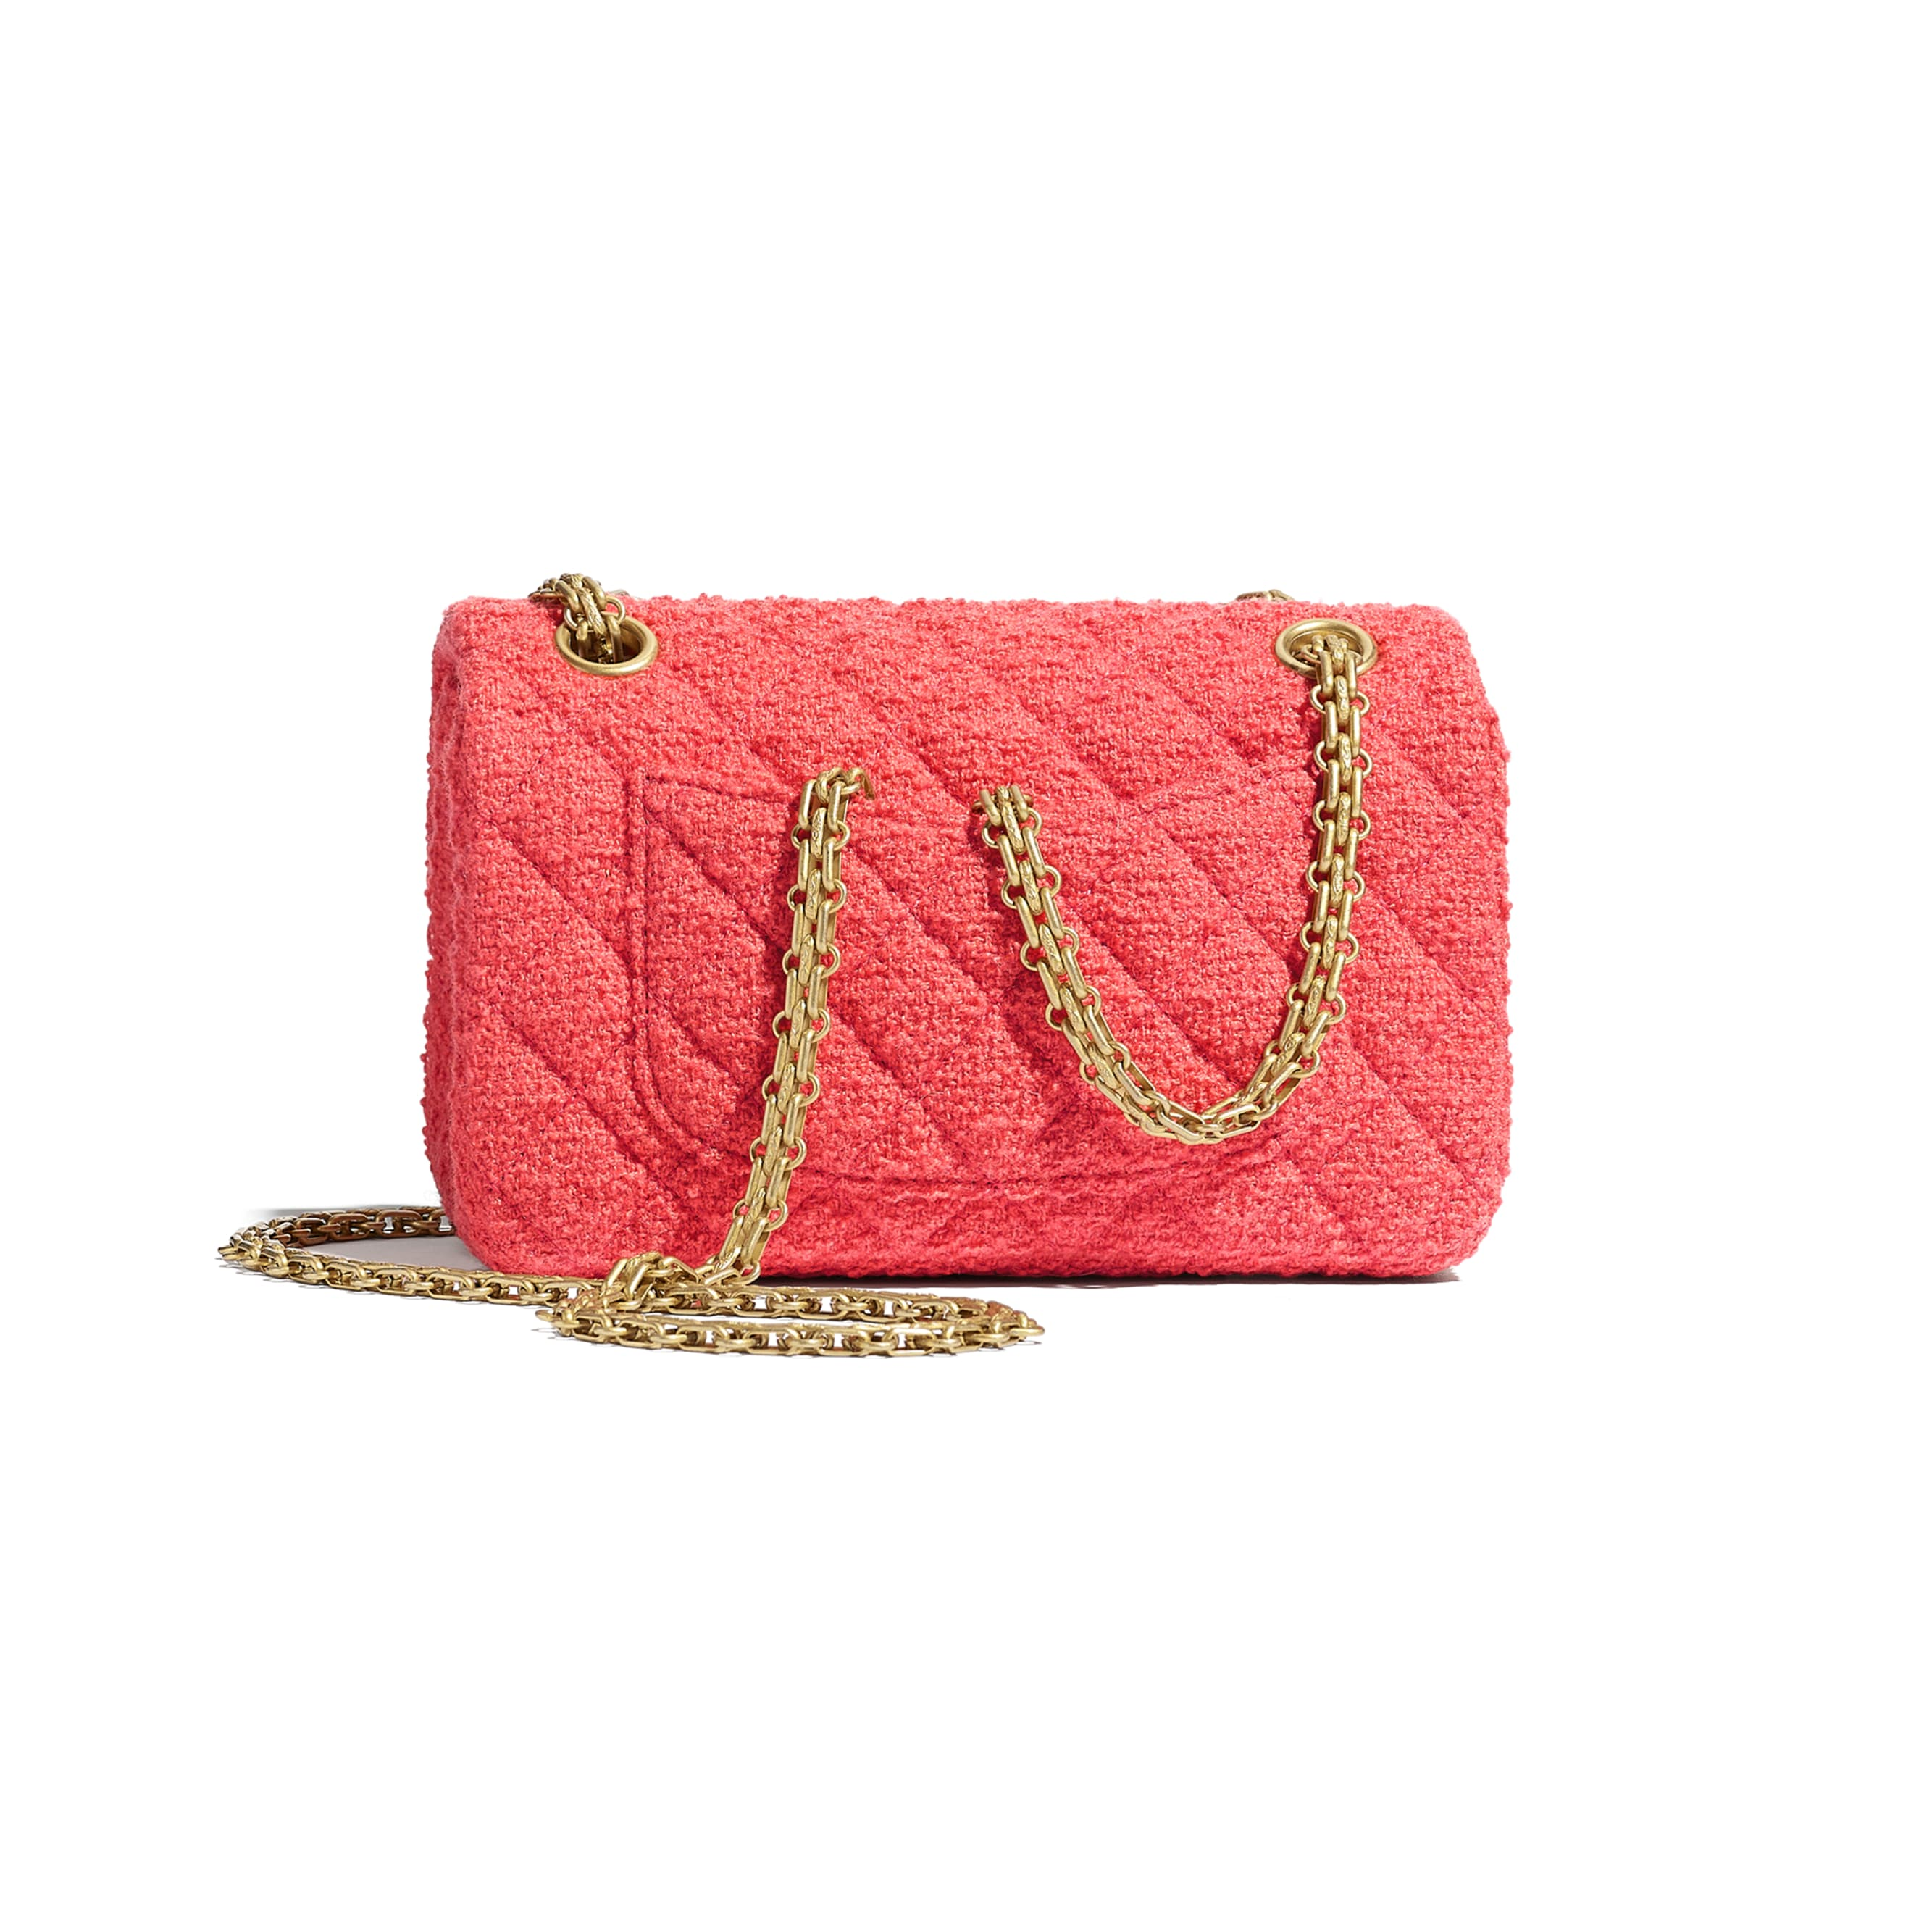 Mini 2.55 Handbag - Coral - Wool Tweed & Gold-Tone Metal - CHANEL - Alternative view - see standard sized version